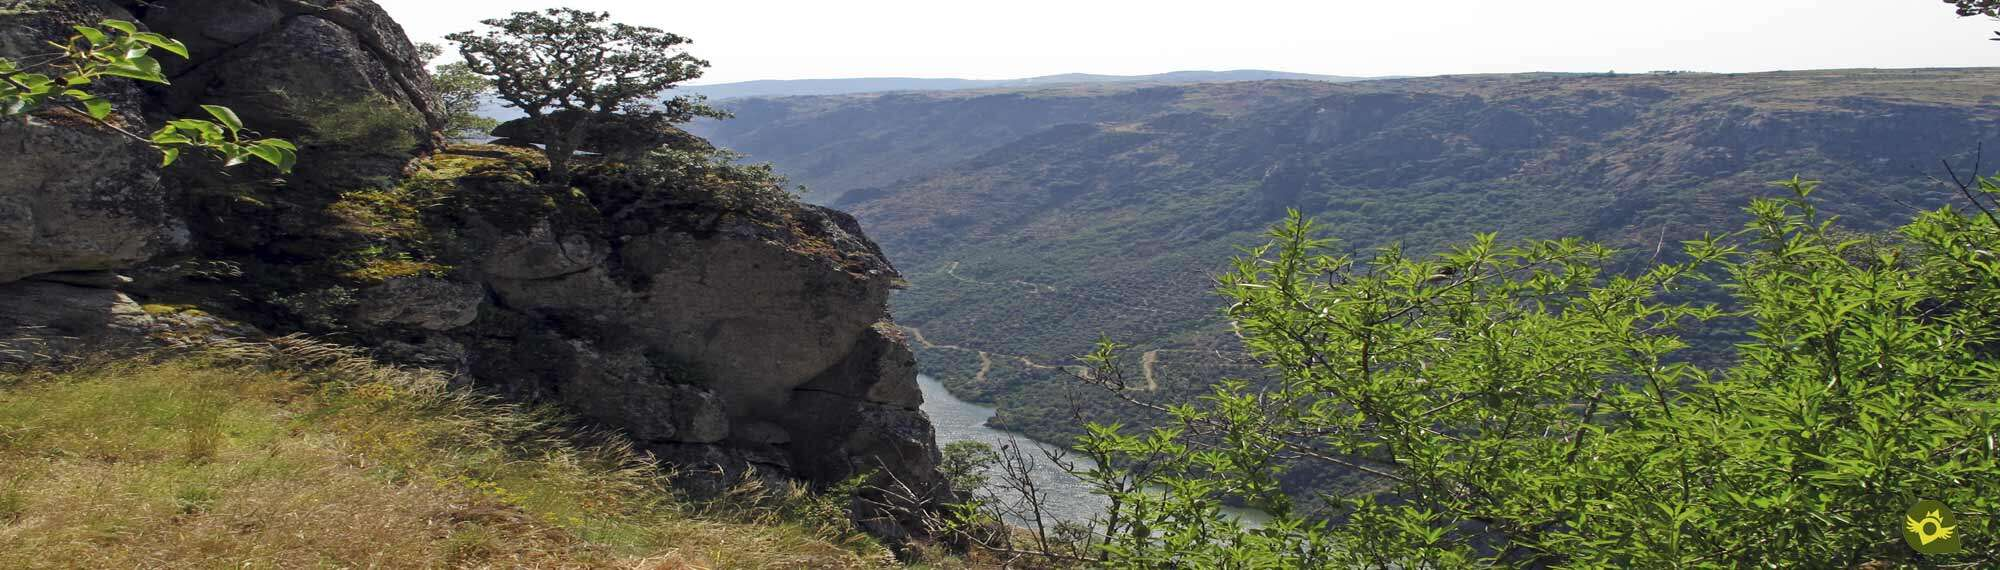 Route of the Viewpoints of the Arribes del Duero Natural Park